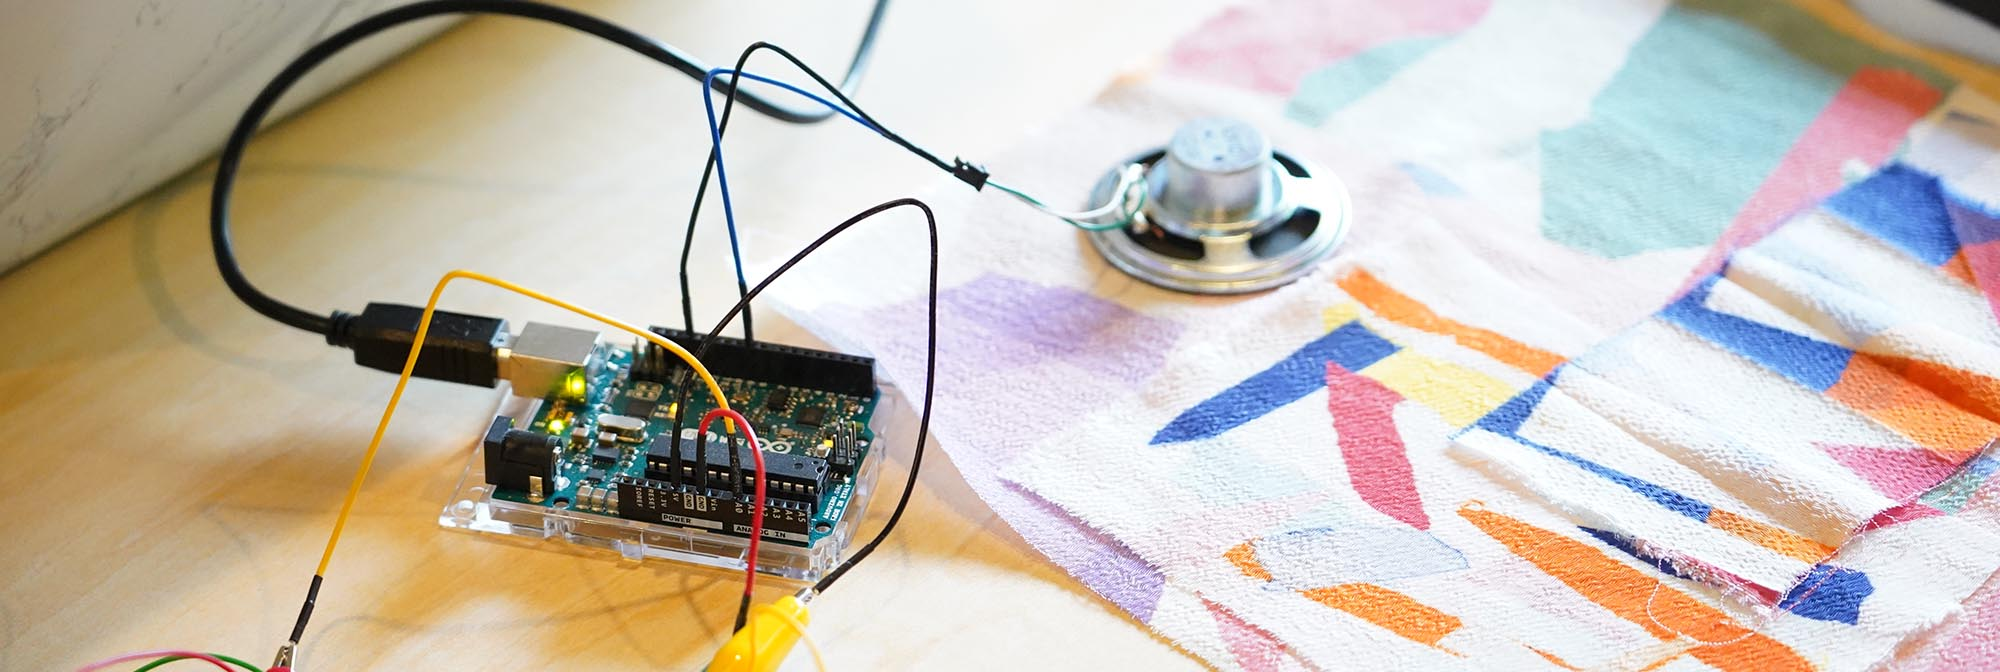 Close-up photograph of some wires and a mental sensor attached to a colourful patterned fabric sample.